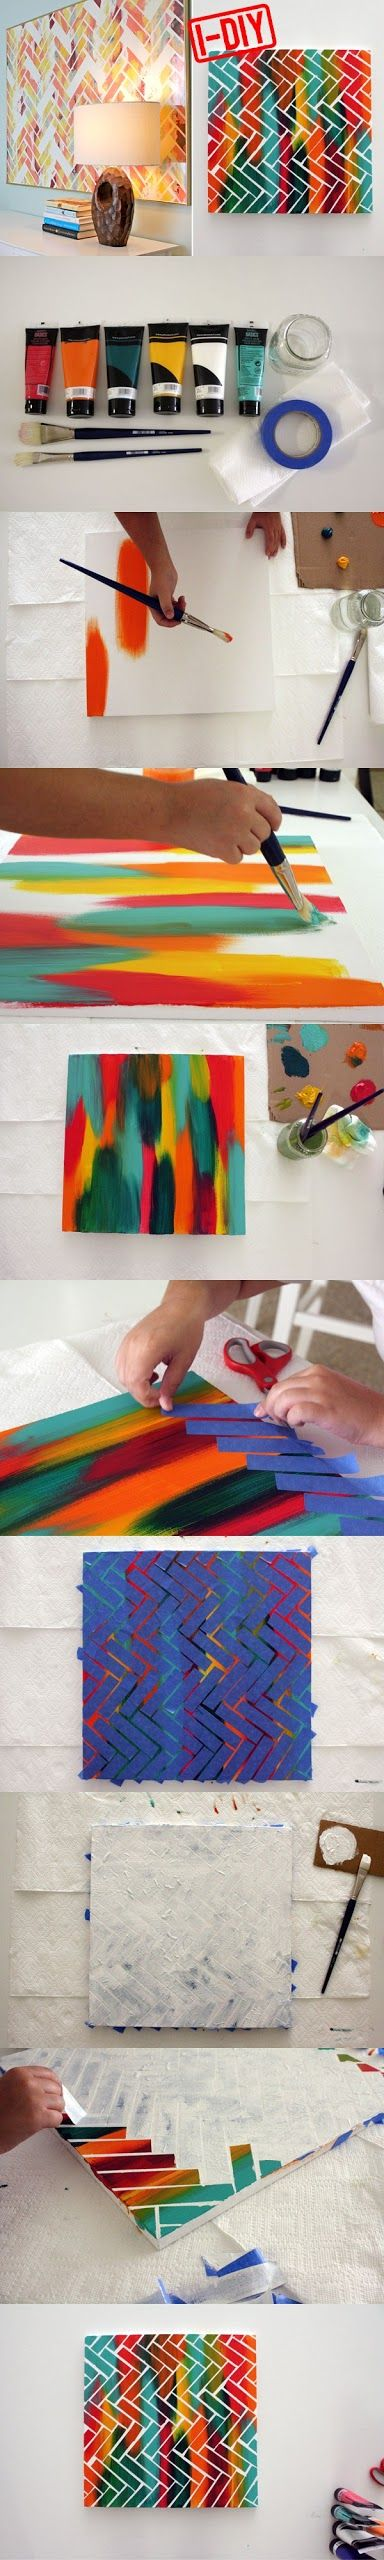 DIY Artwork Project-PAINTERS TAPE ART DIY